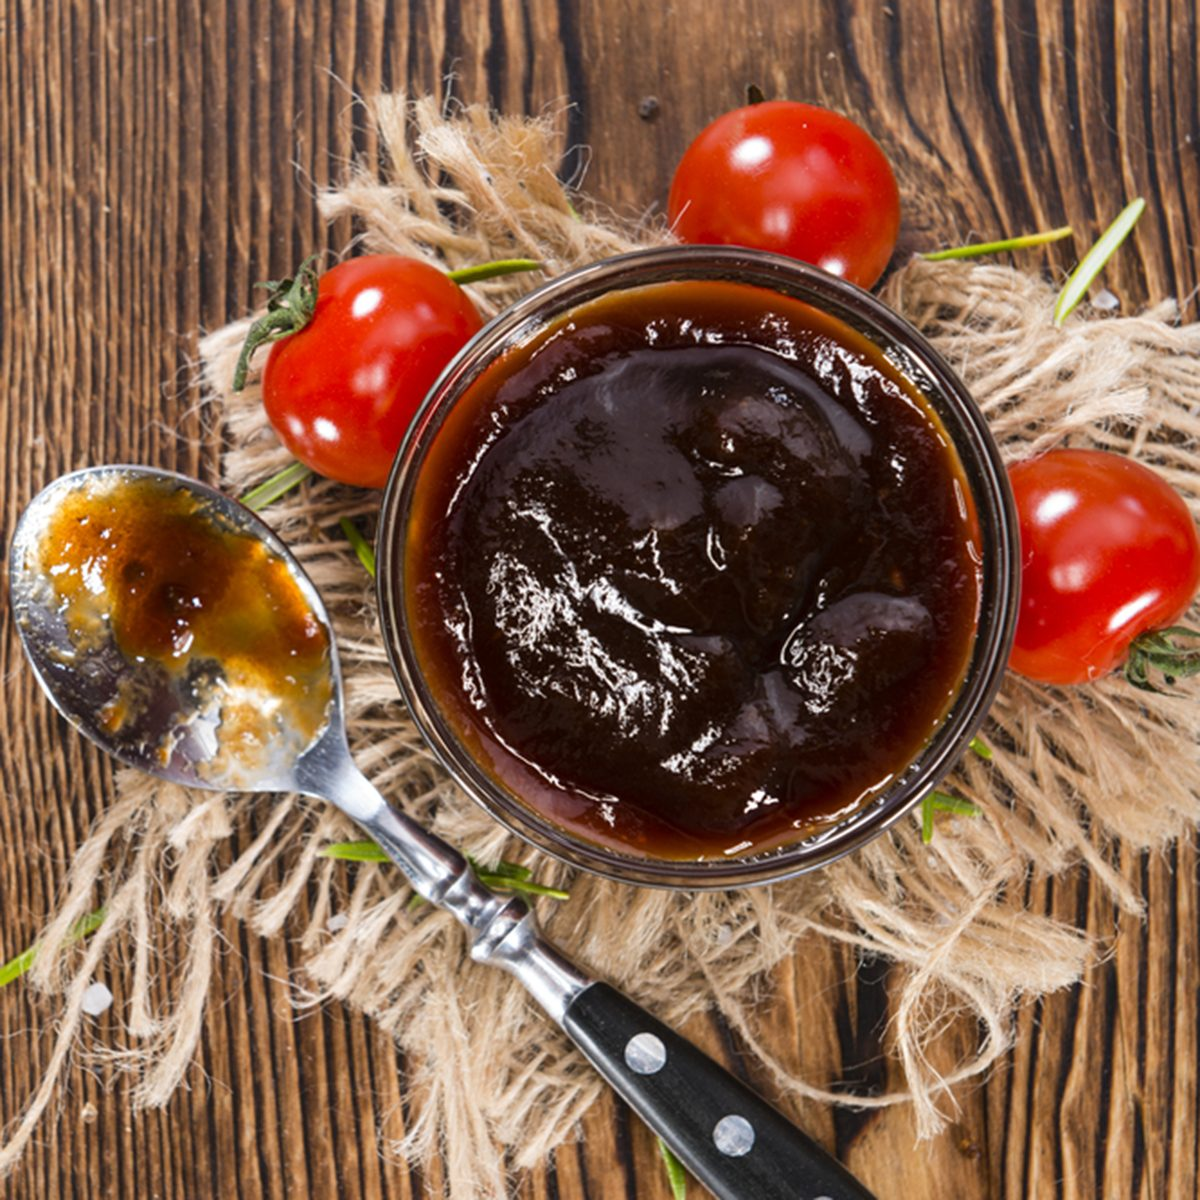 Homemade Barbeque Sauce with Tomatoes, Smoked Salt and fresh Herbs